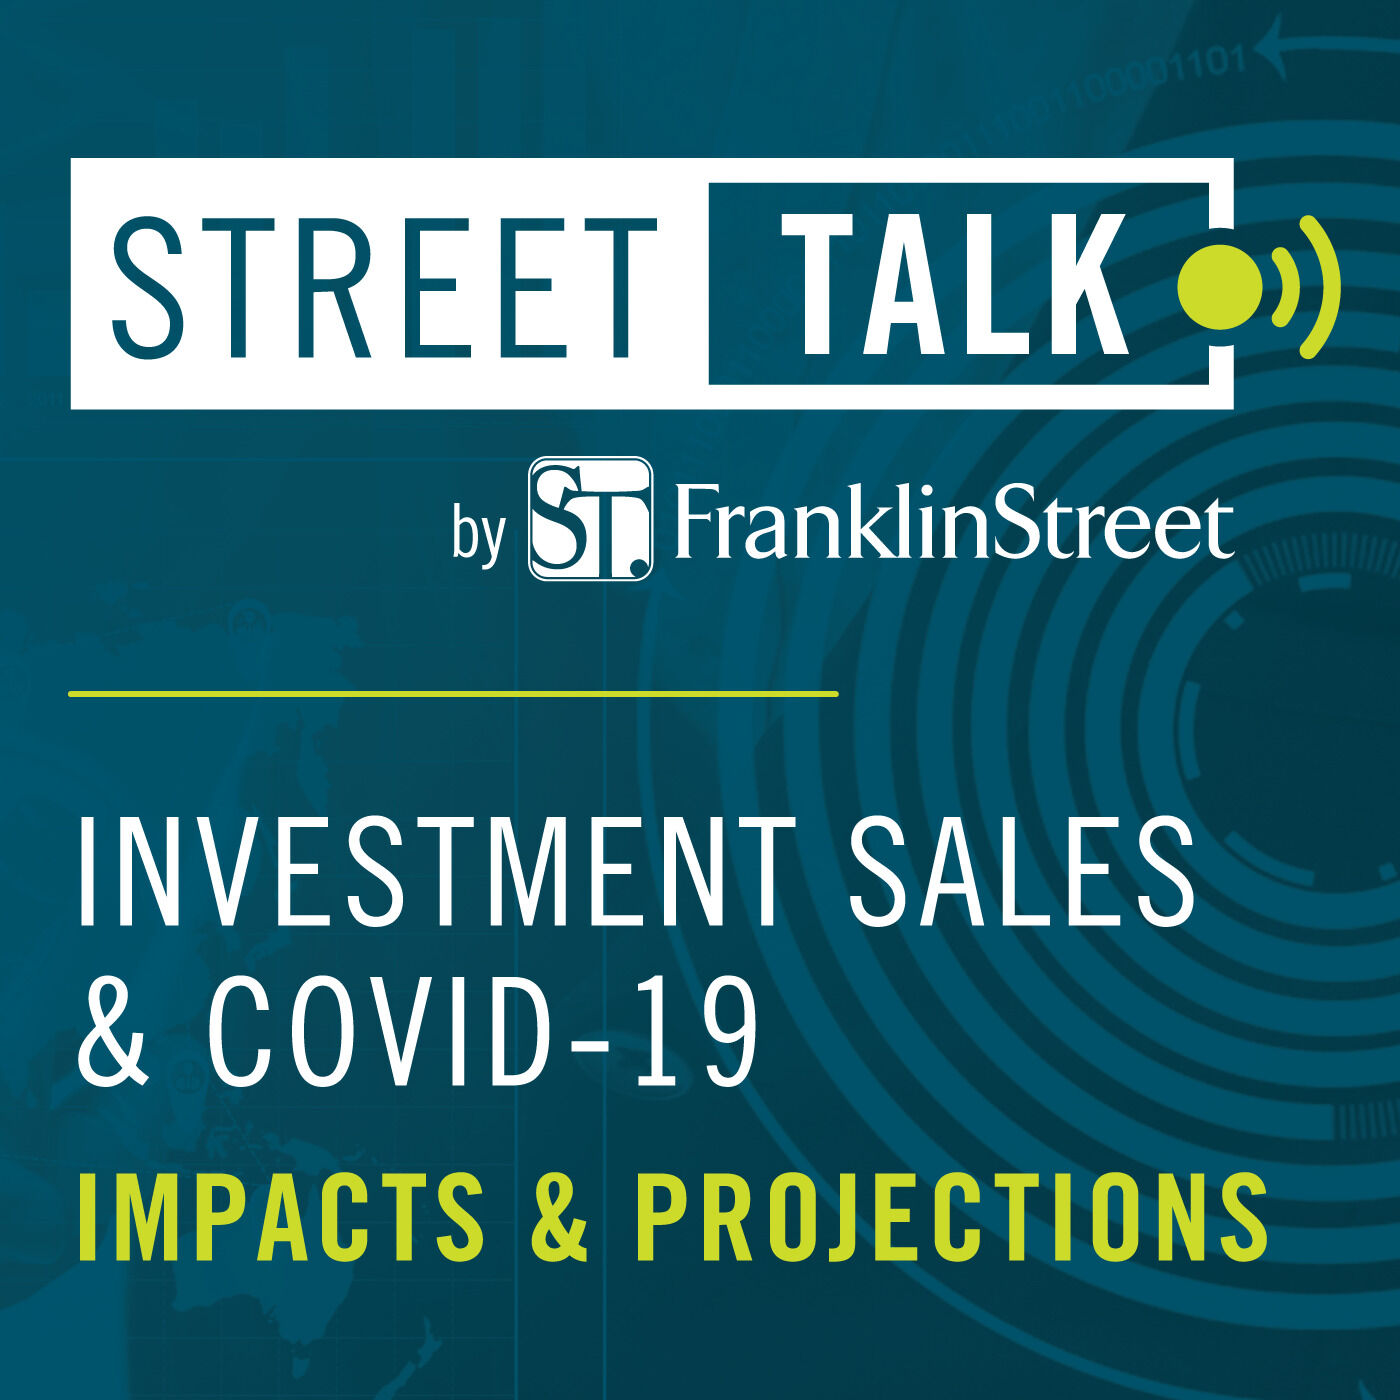 Investment Sales & COVID-19: Impacts & Projections